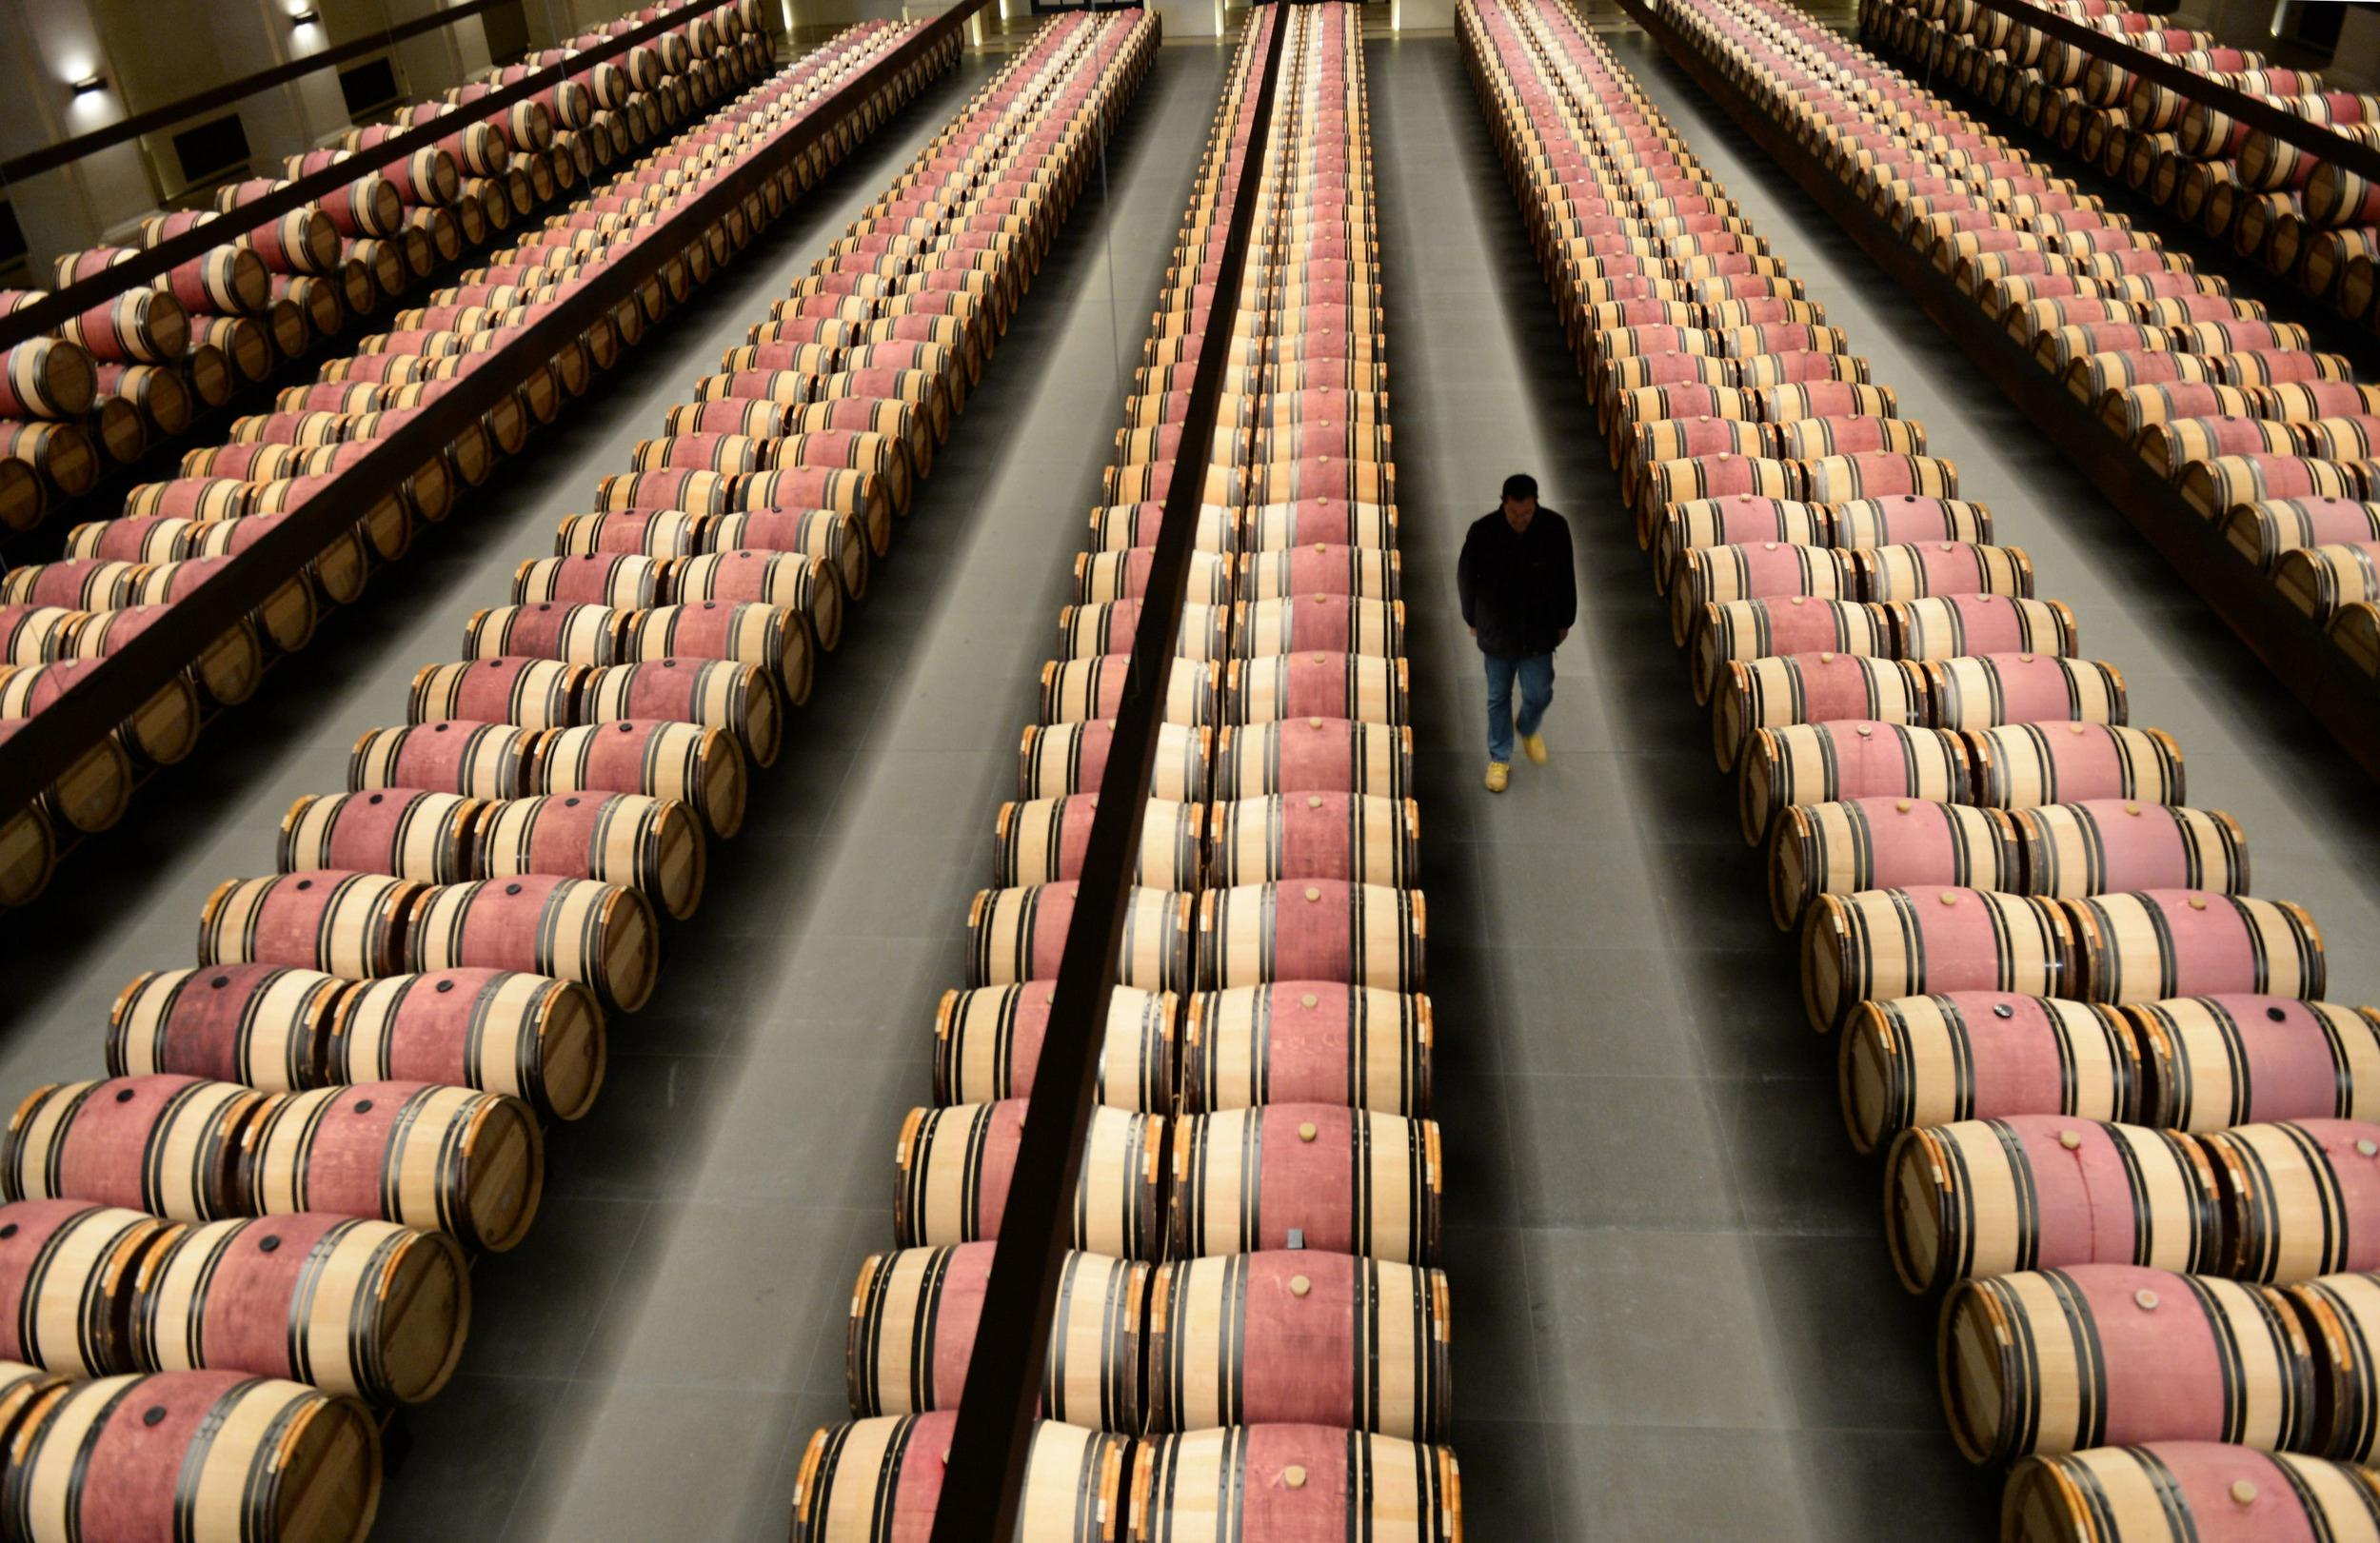 U.S. Overtakes France as World's Largest Wine Market - NBC ...